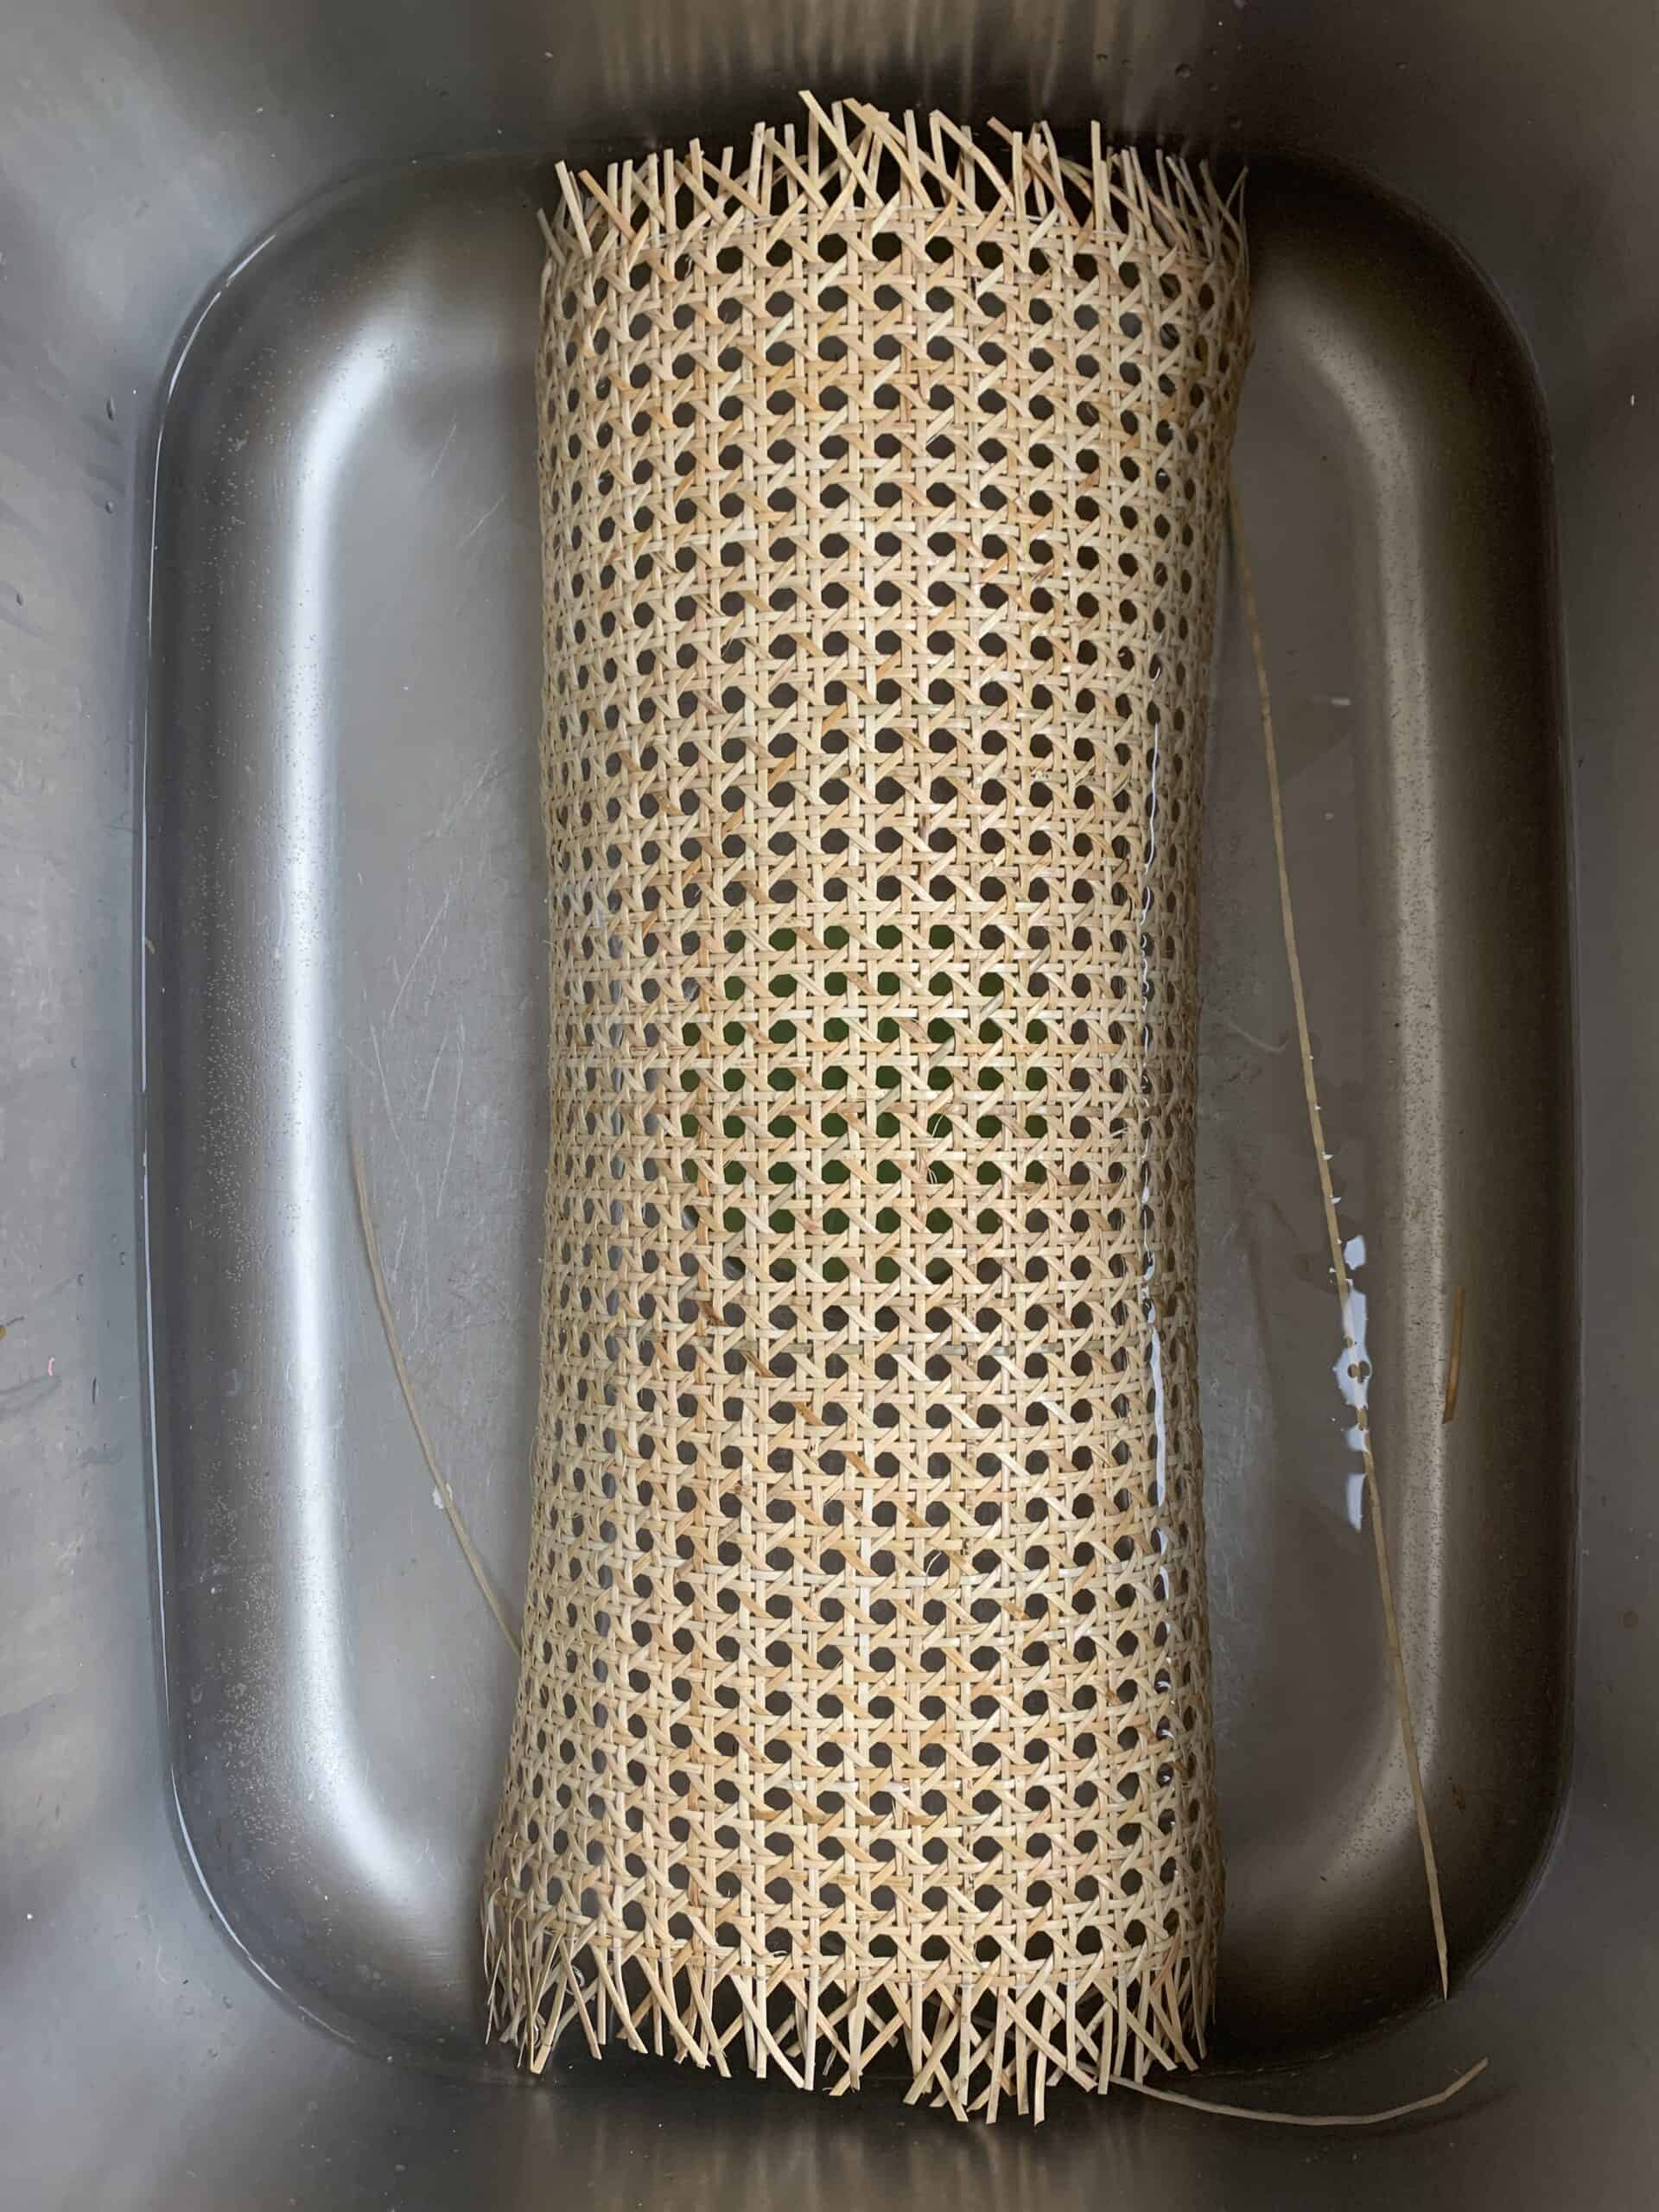 piece of cane mesh soaking